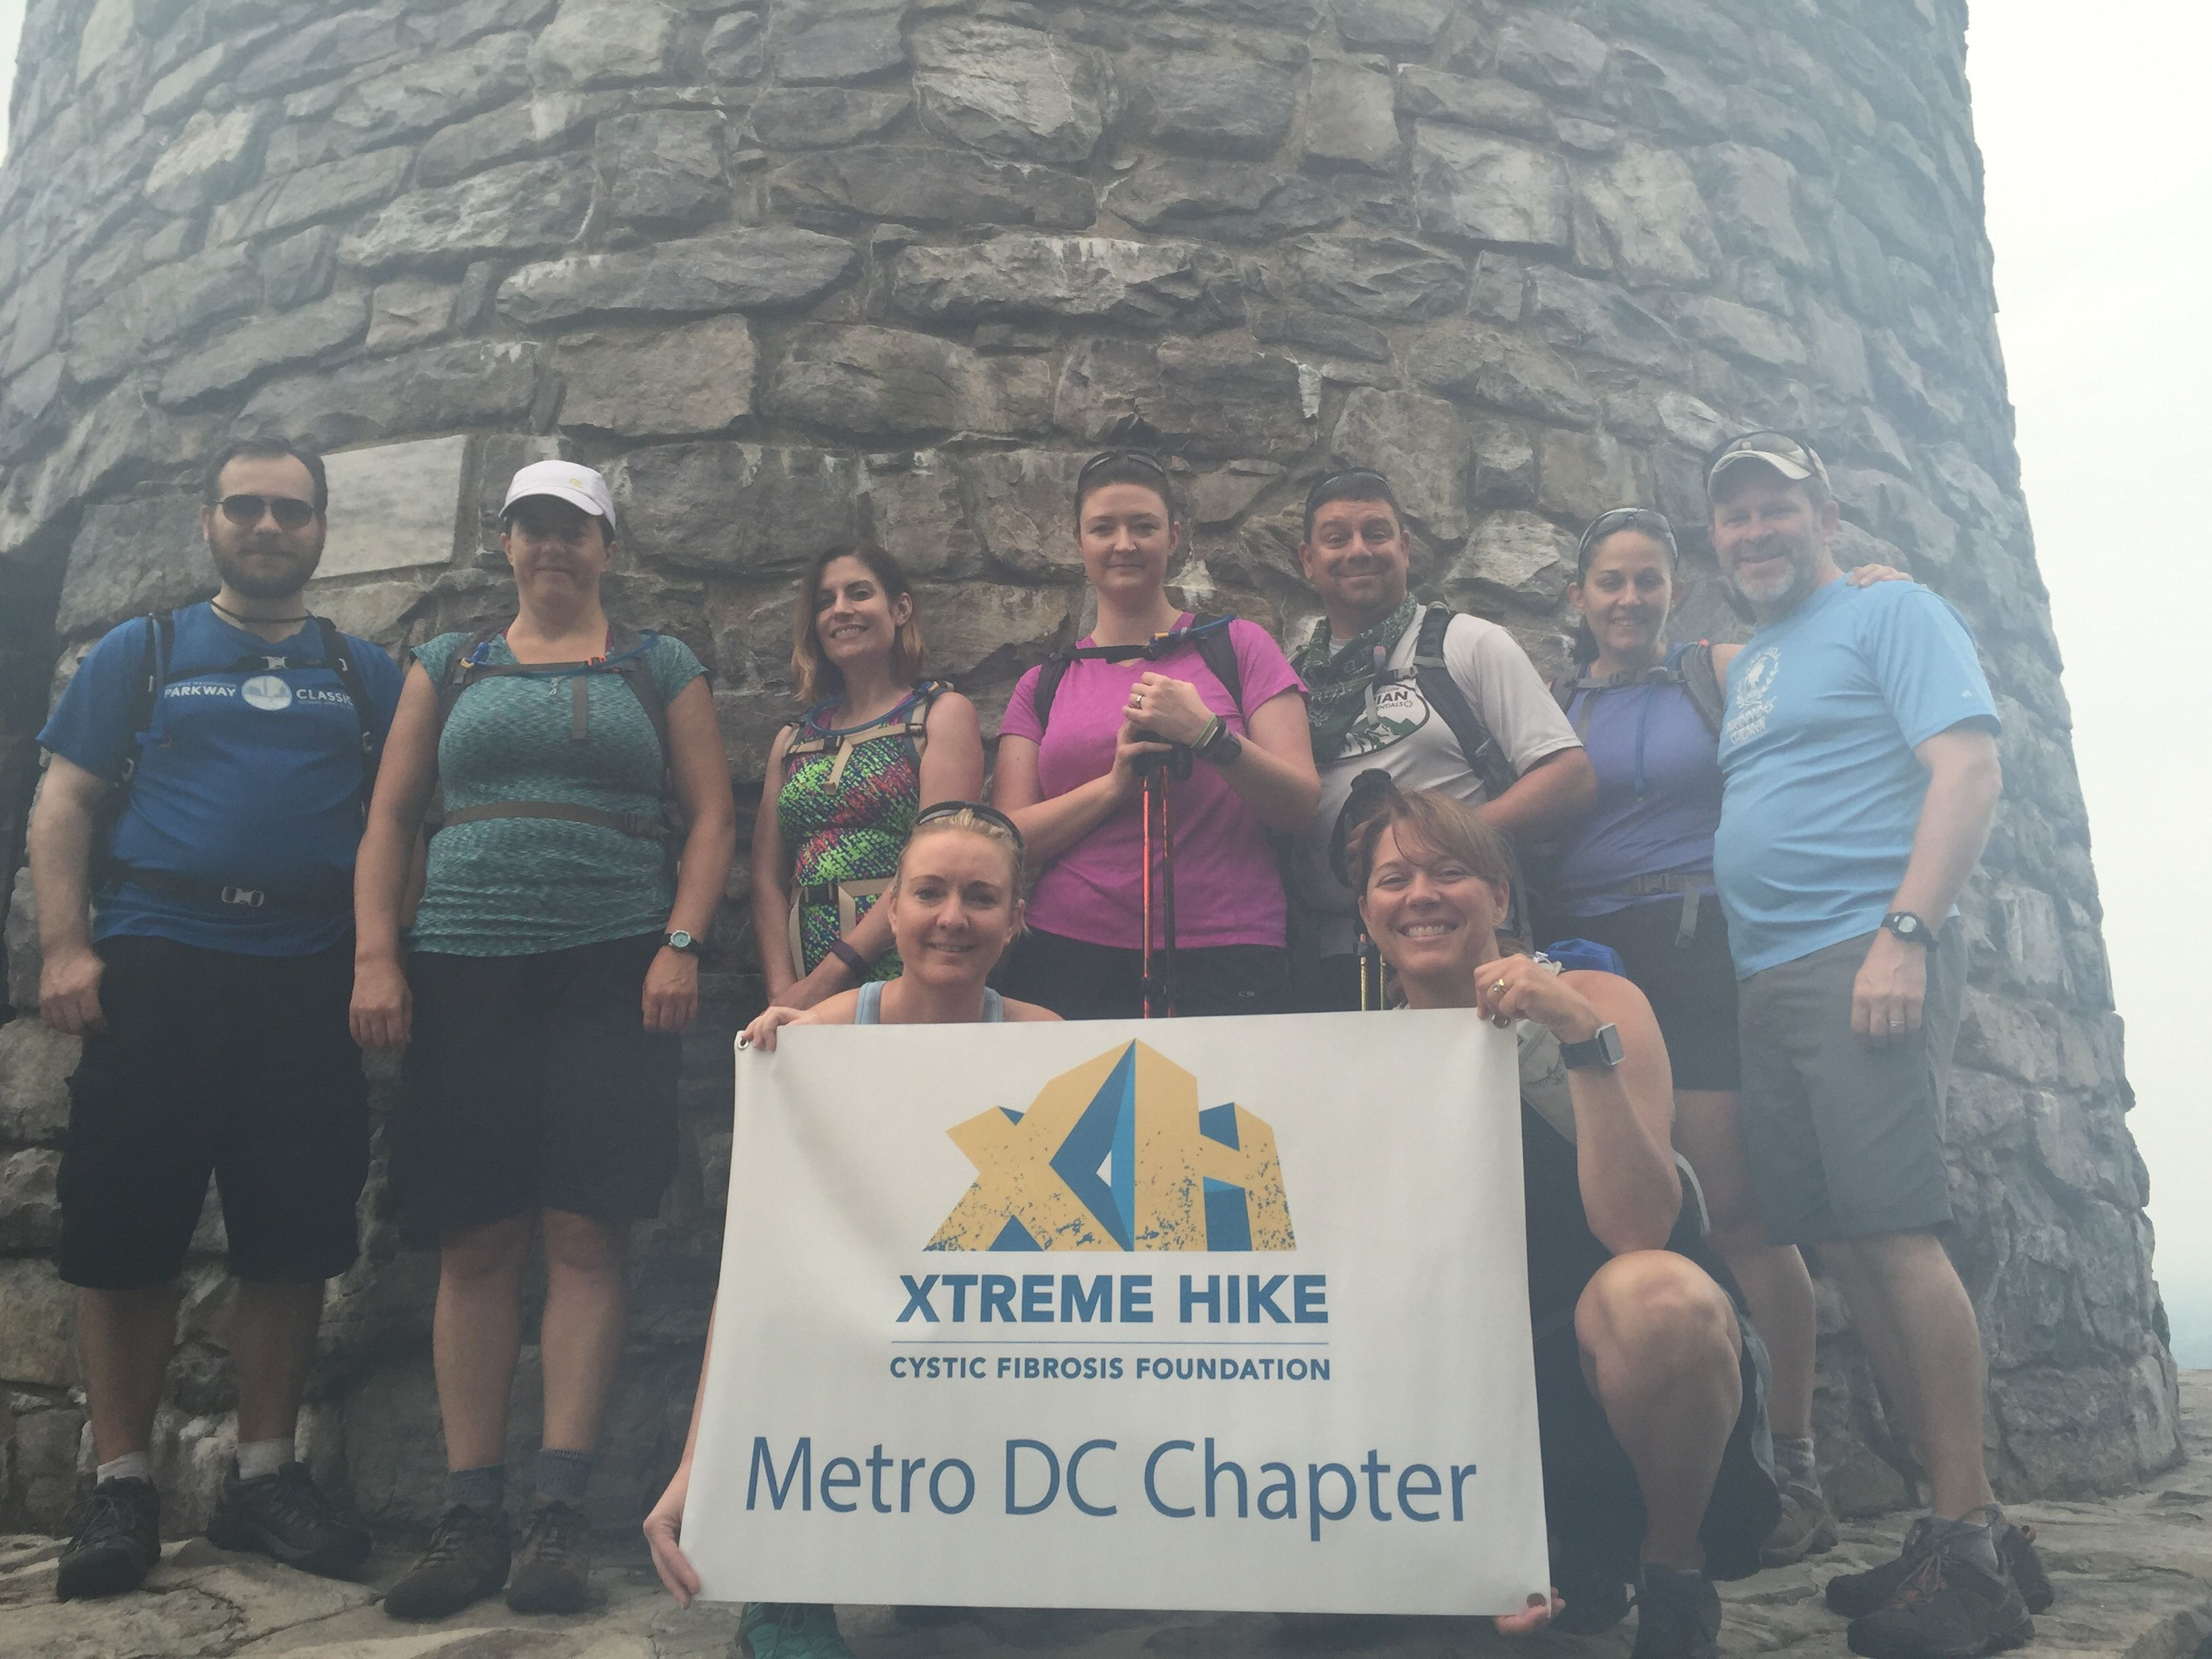 Xtreme Hikers- Hiking for a cure of Cystic Fibrosis